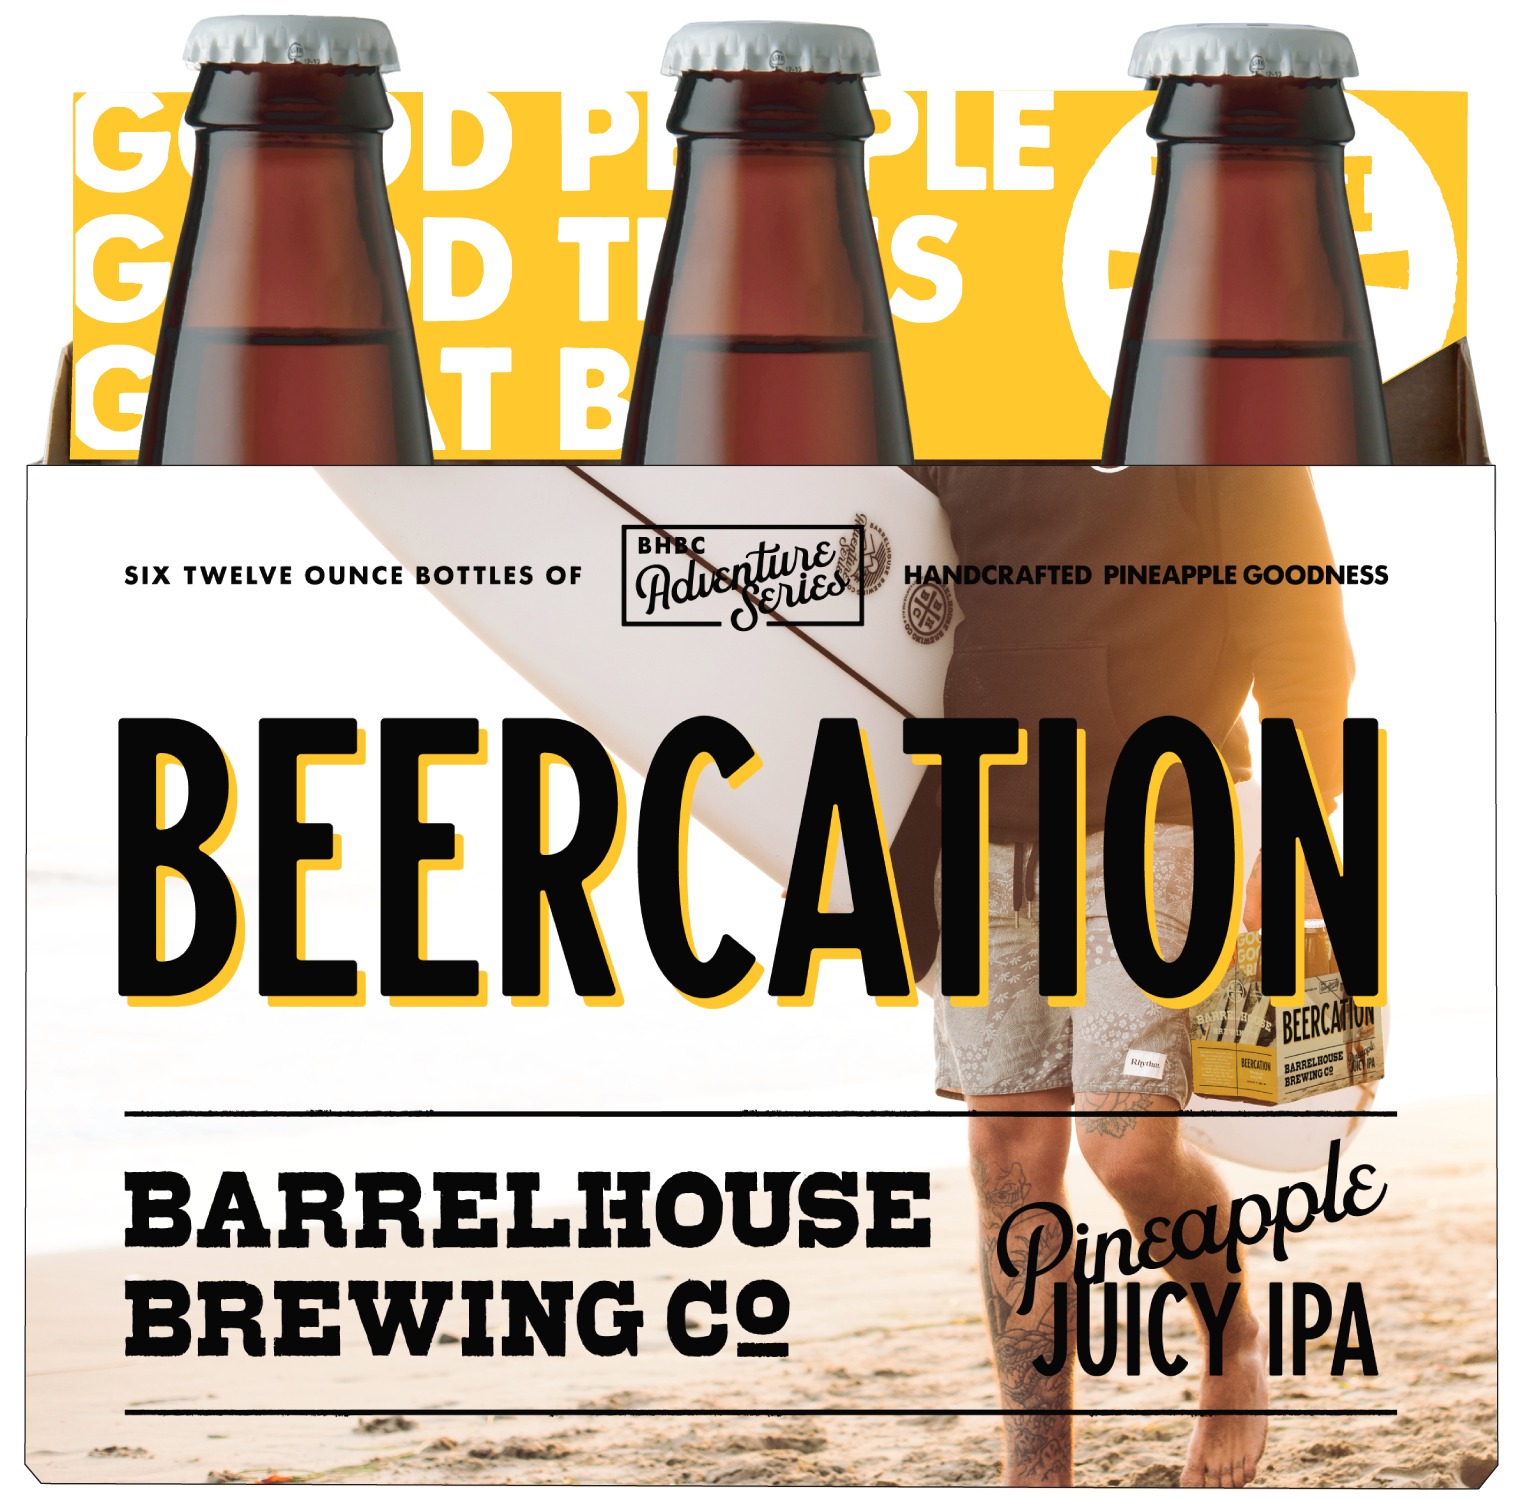 BHBC-ADV-BEERCATION-12oz-Carrier-Long-web.png